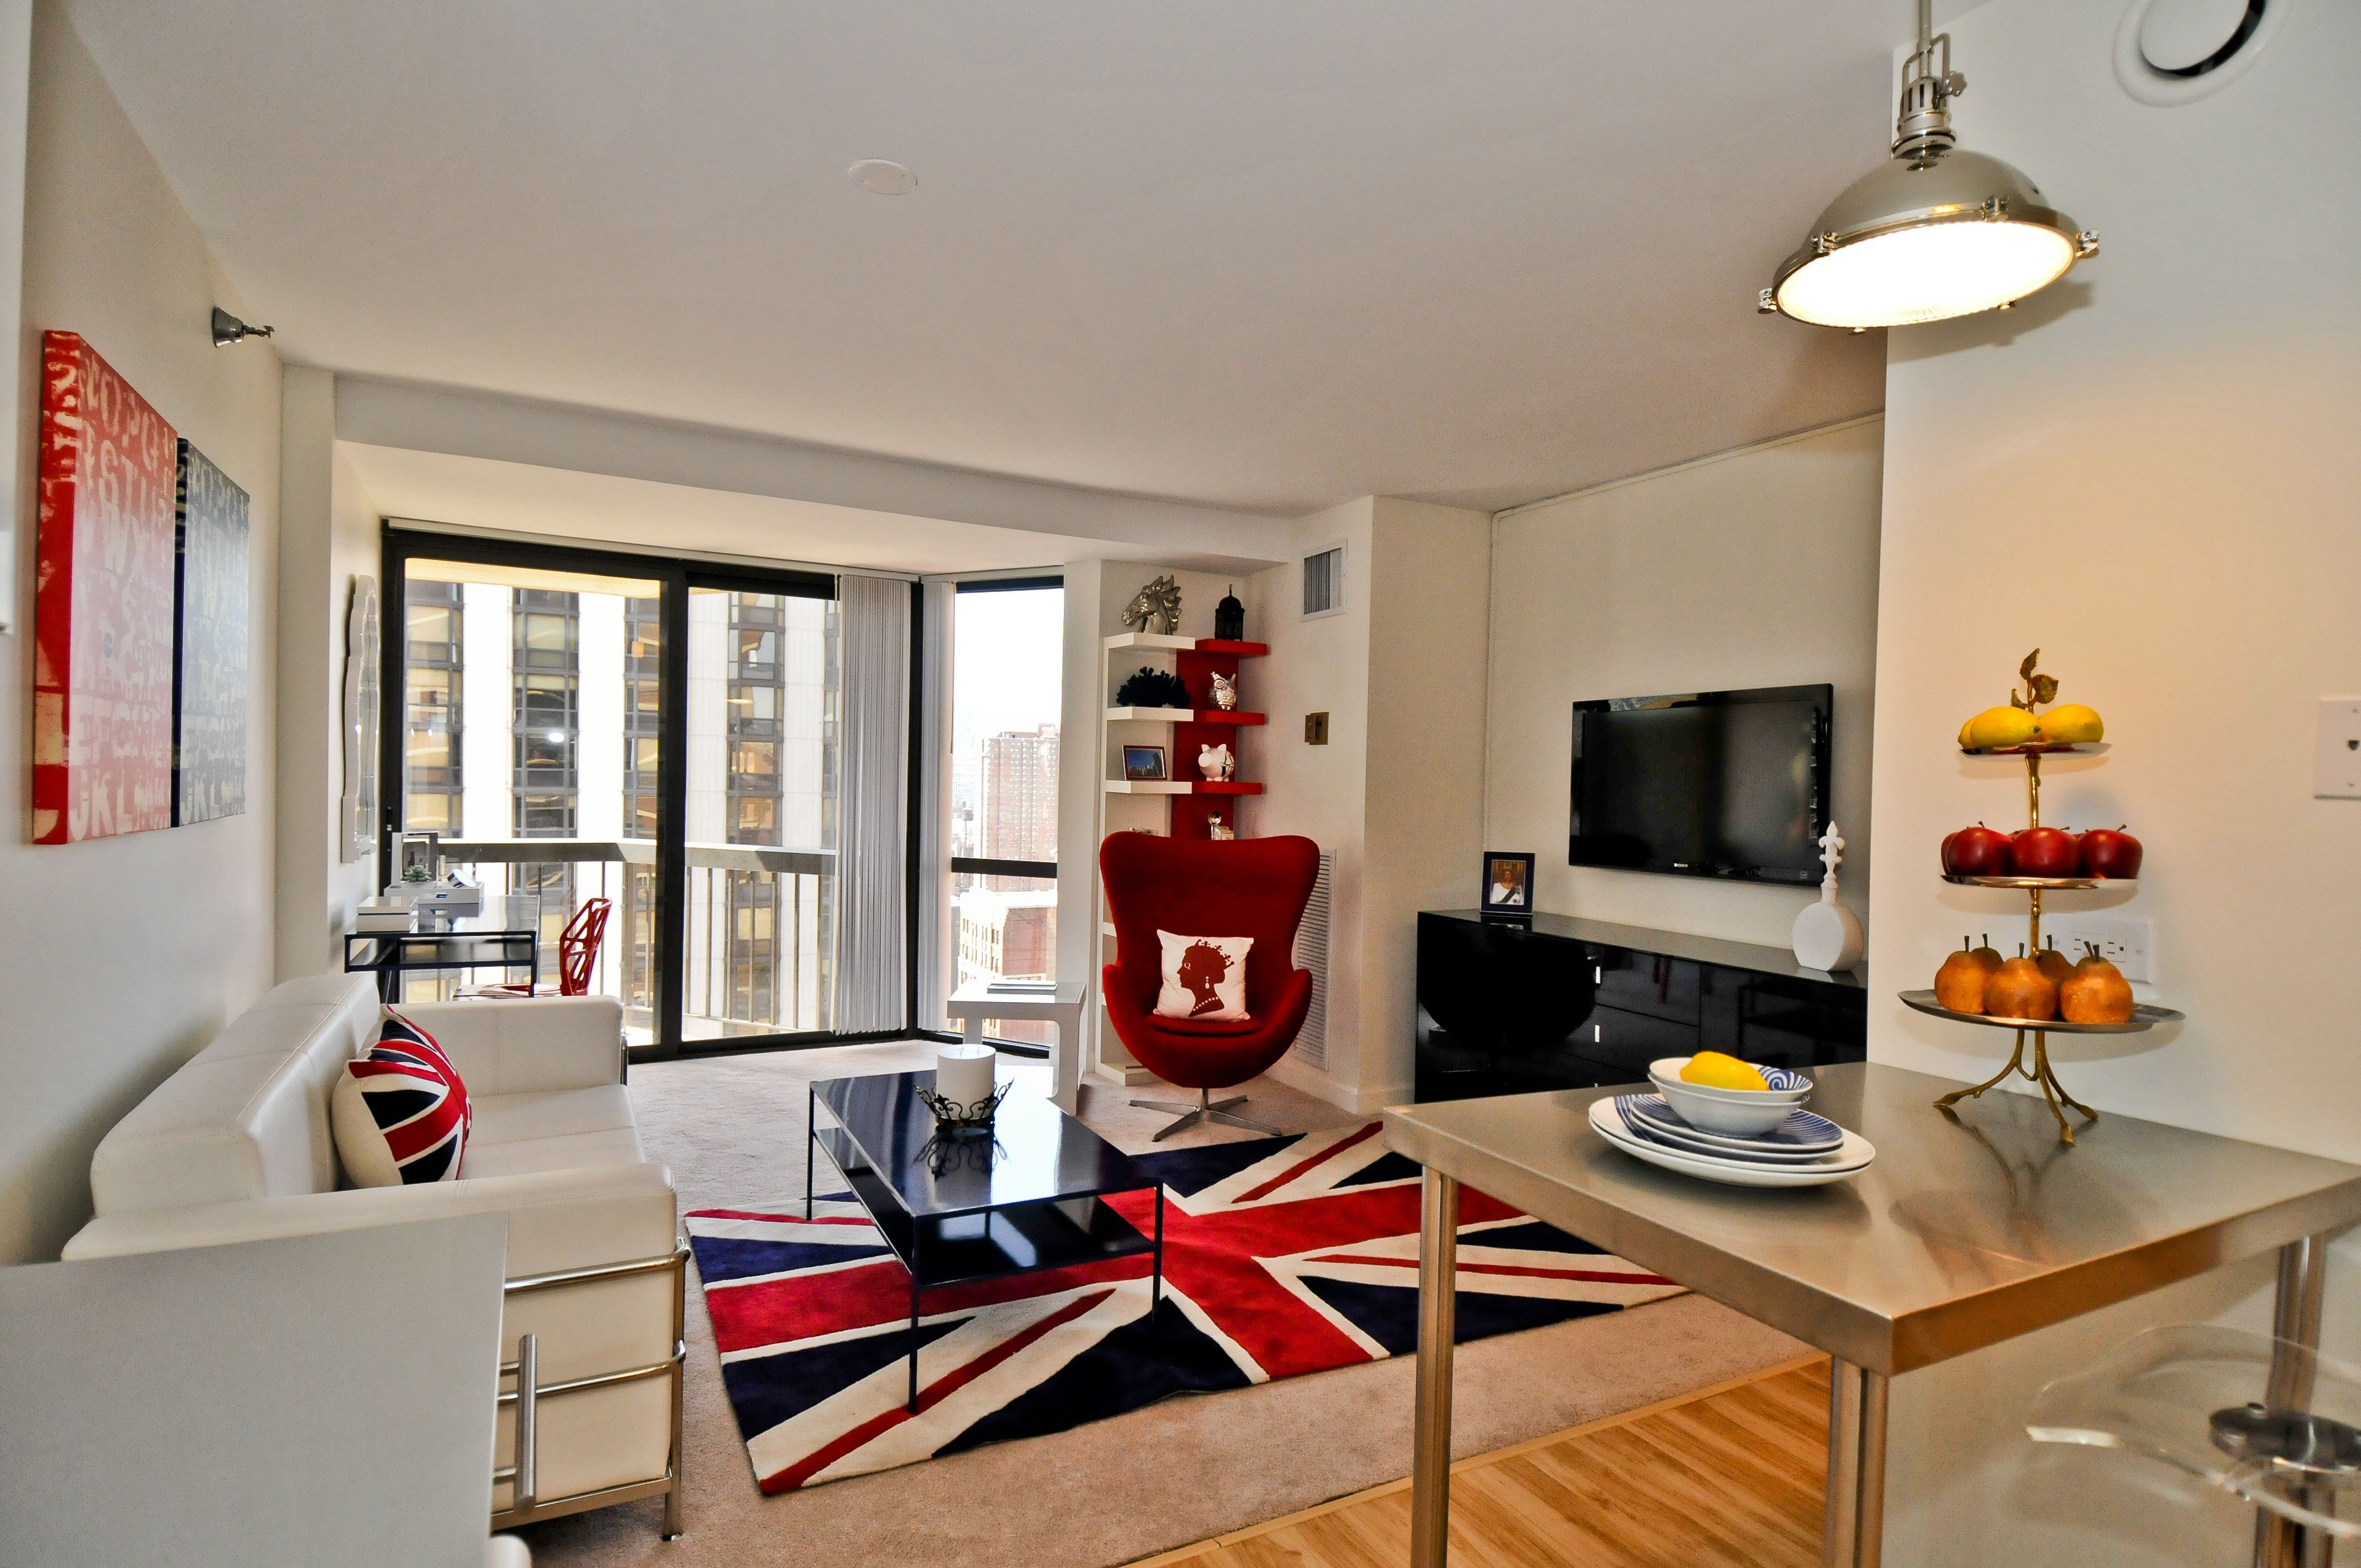 2 Bedroom Apartments In Gold Coast Chicago di 2020